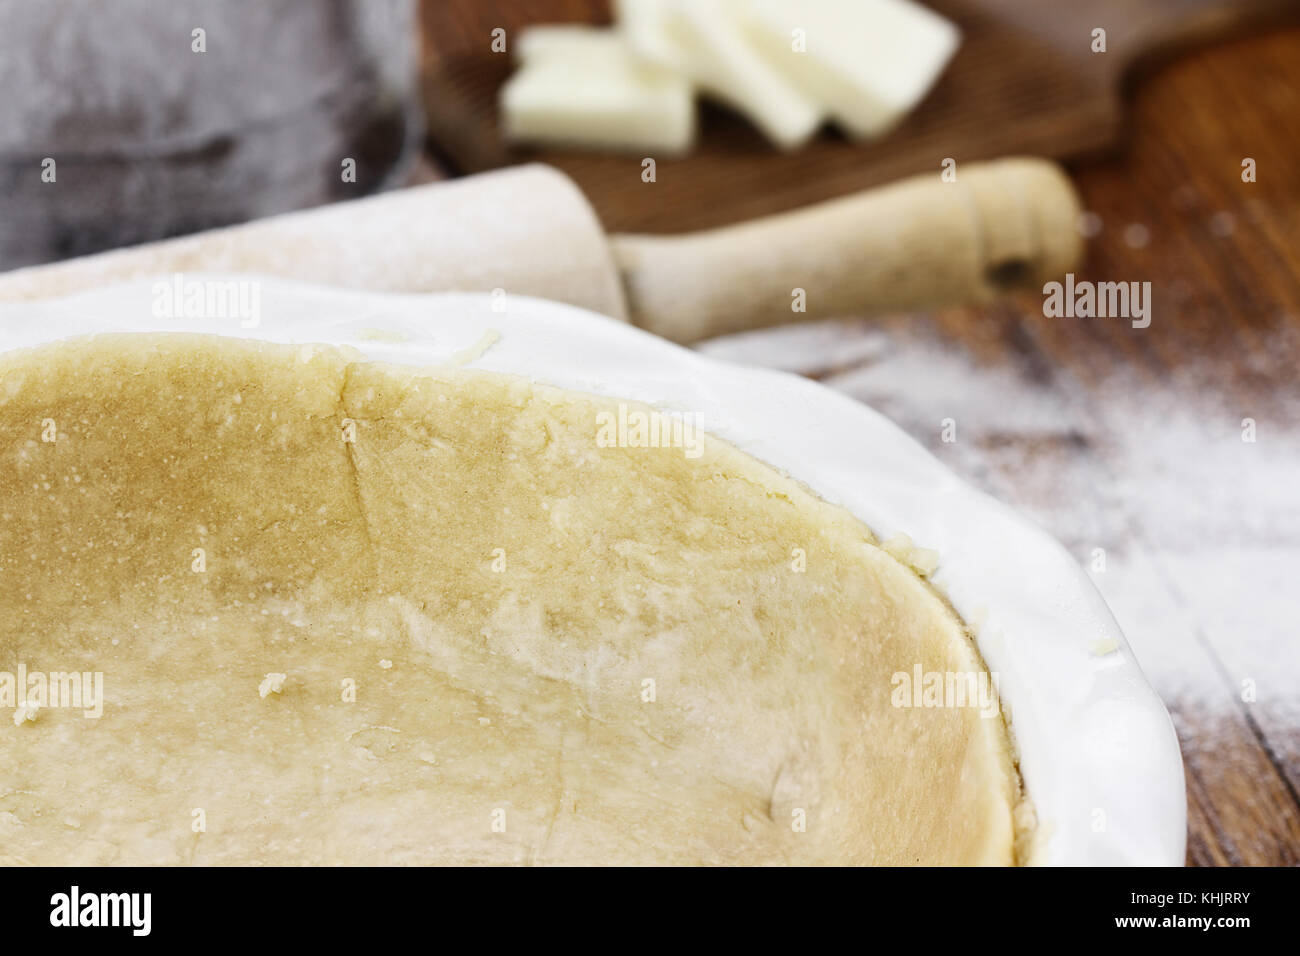 Homemade pastry s with rolling pin, sifter and butter in background. Extreme shallow depth of field with selective - Stock Image